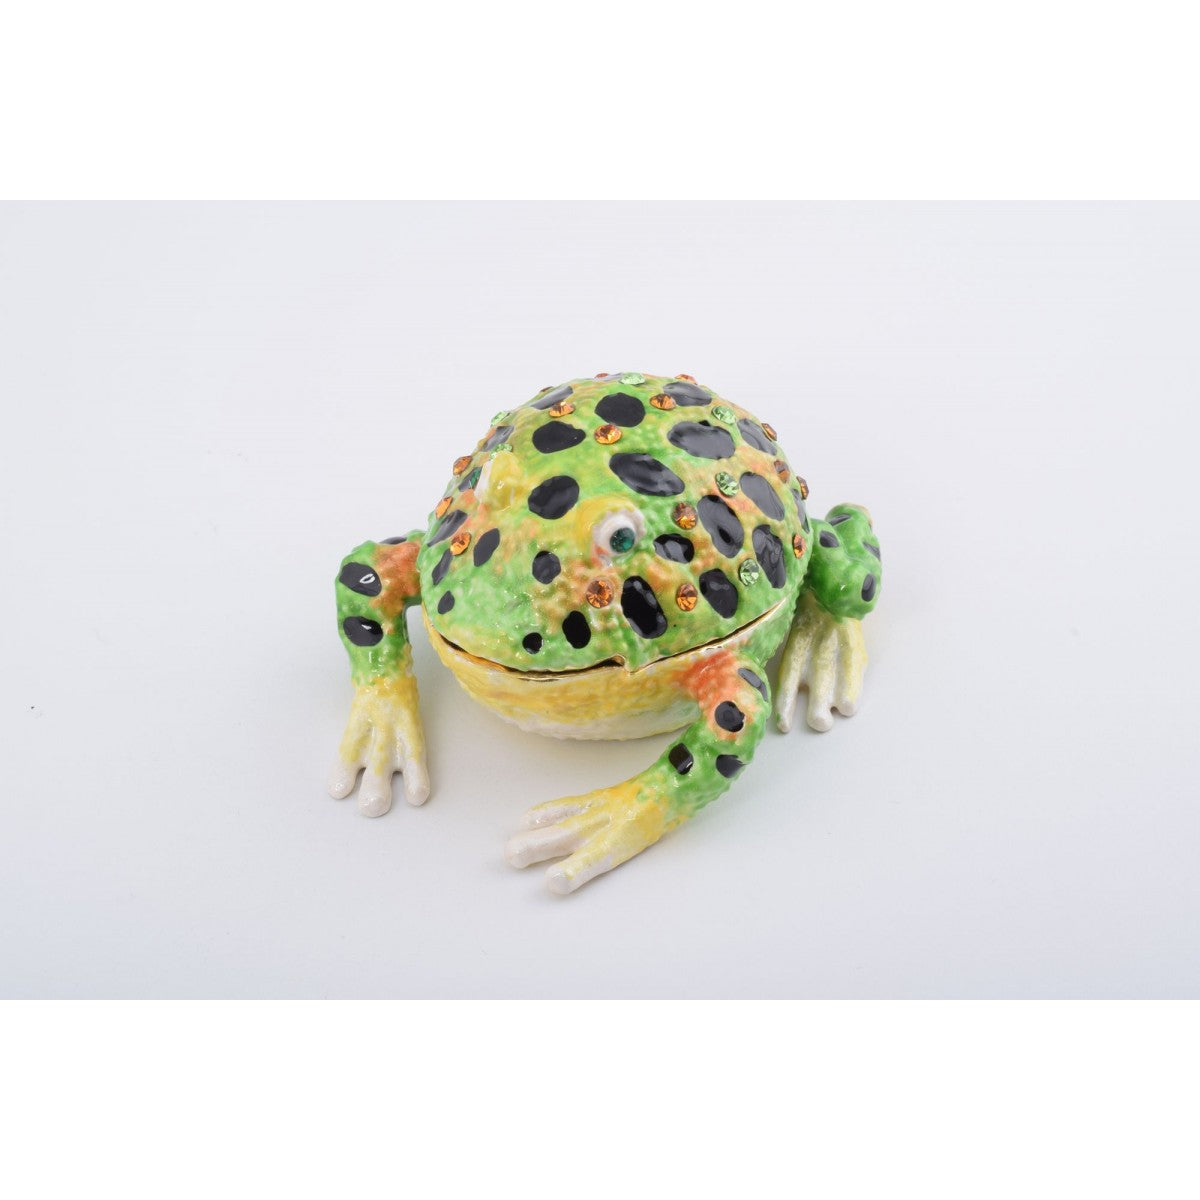 Black Spotted Frog Trinket Box by Keren Kopal